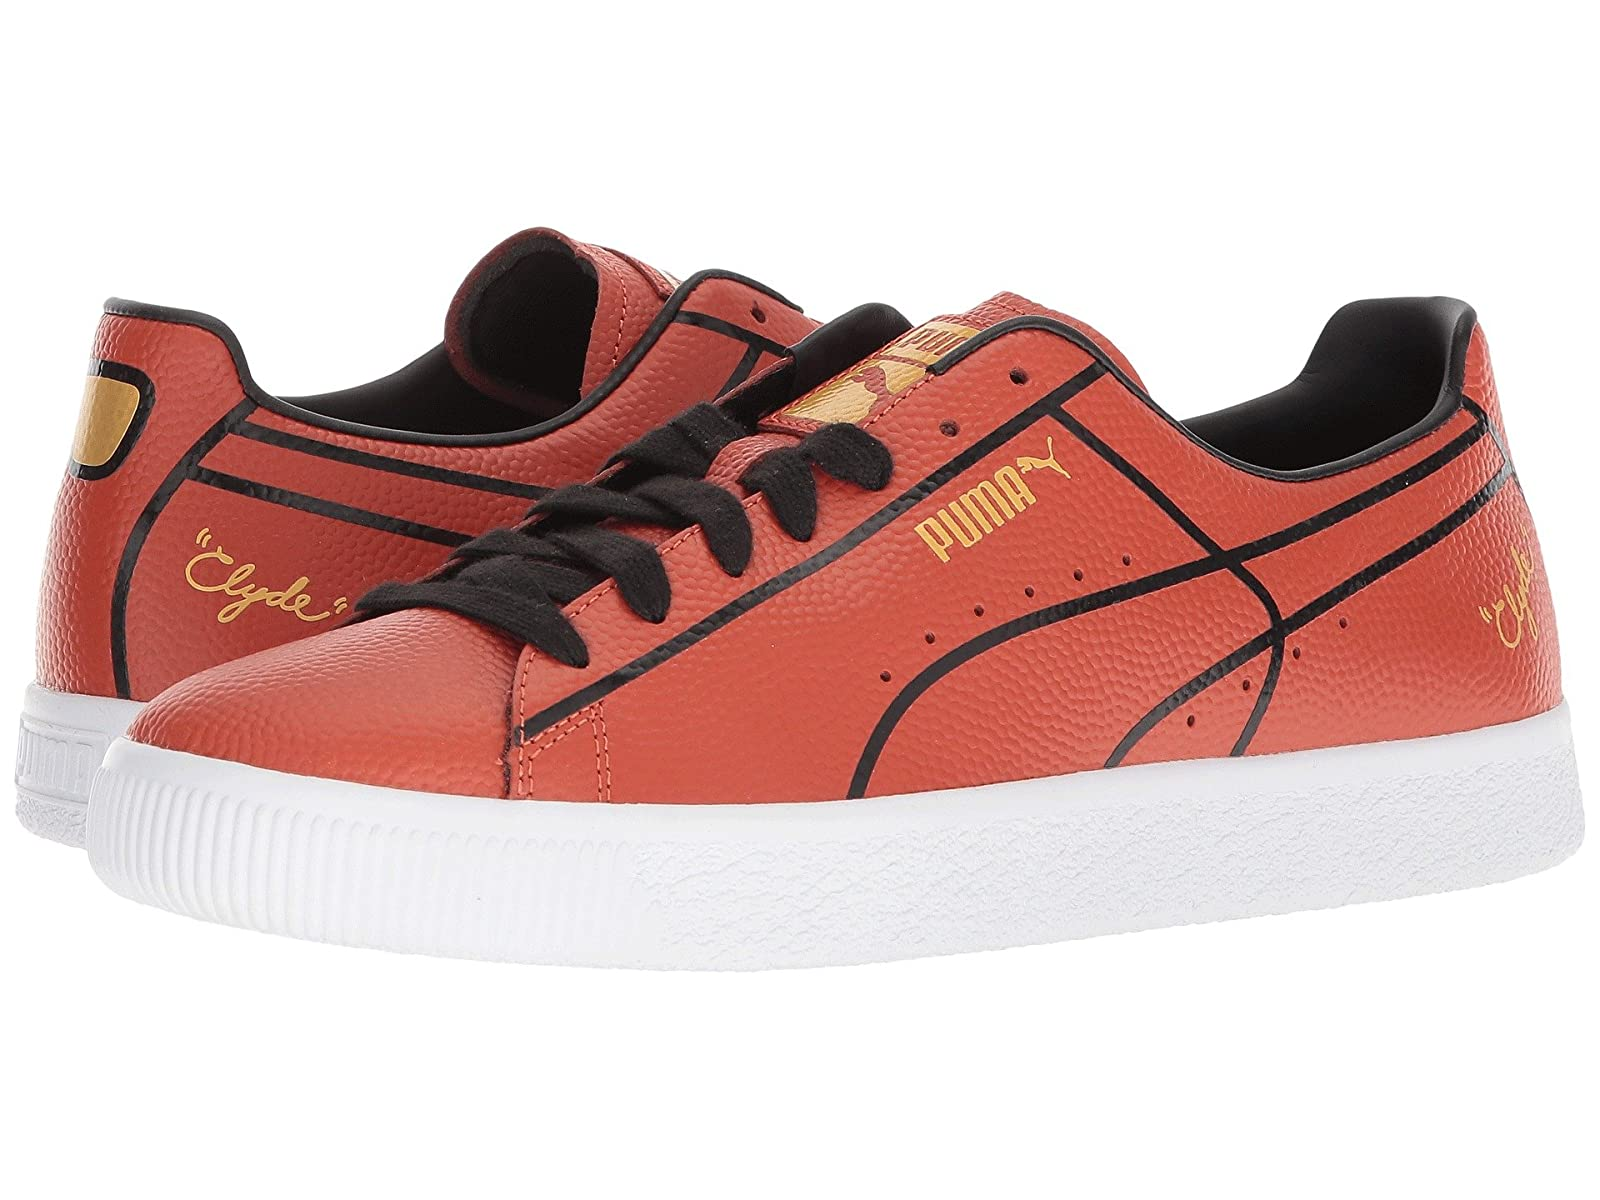 PUMA Clyde Bball MadnessCheap and distinctive eye-catching shoes